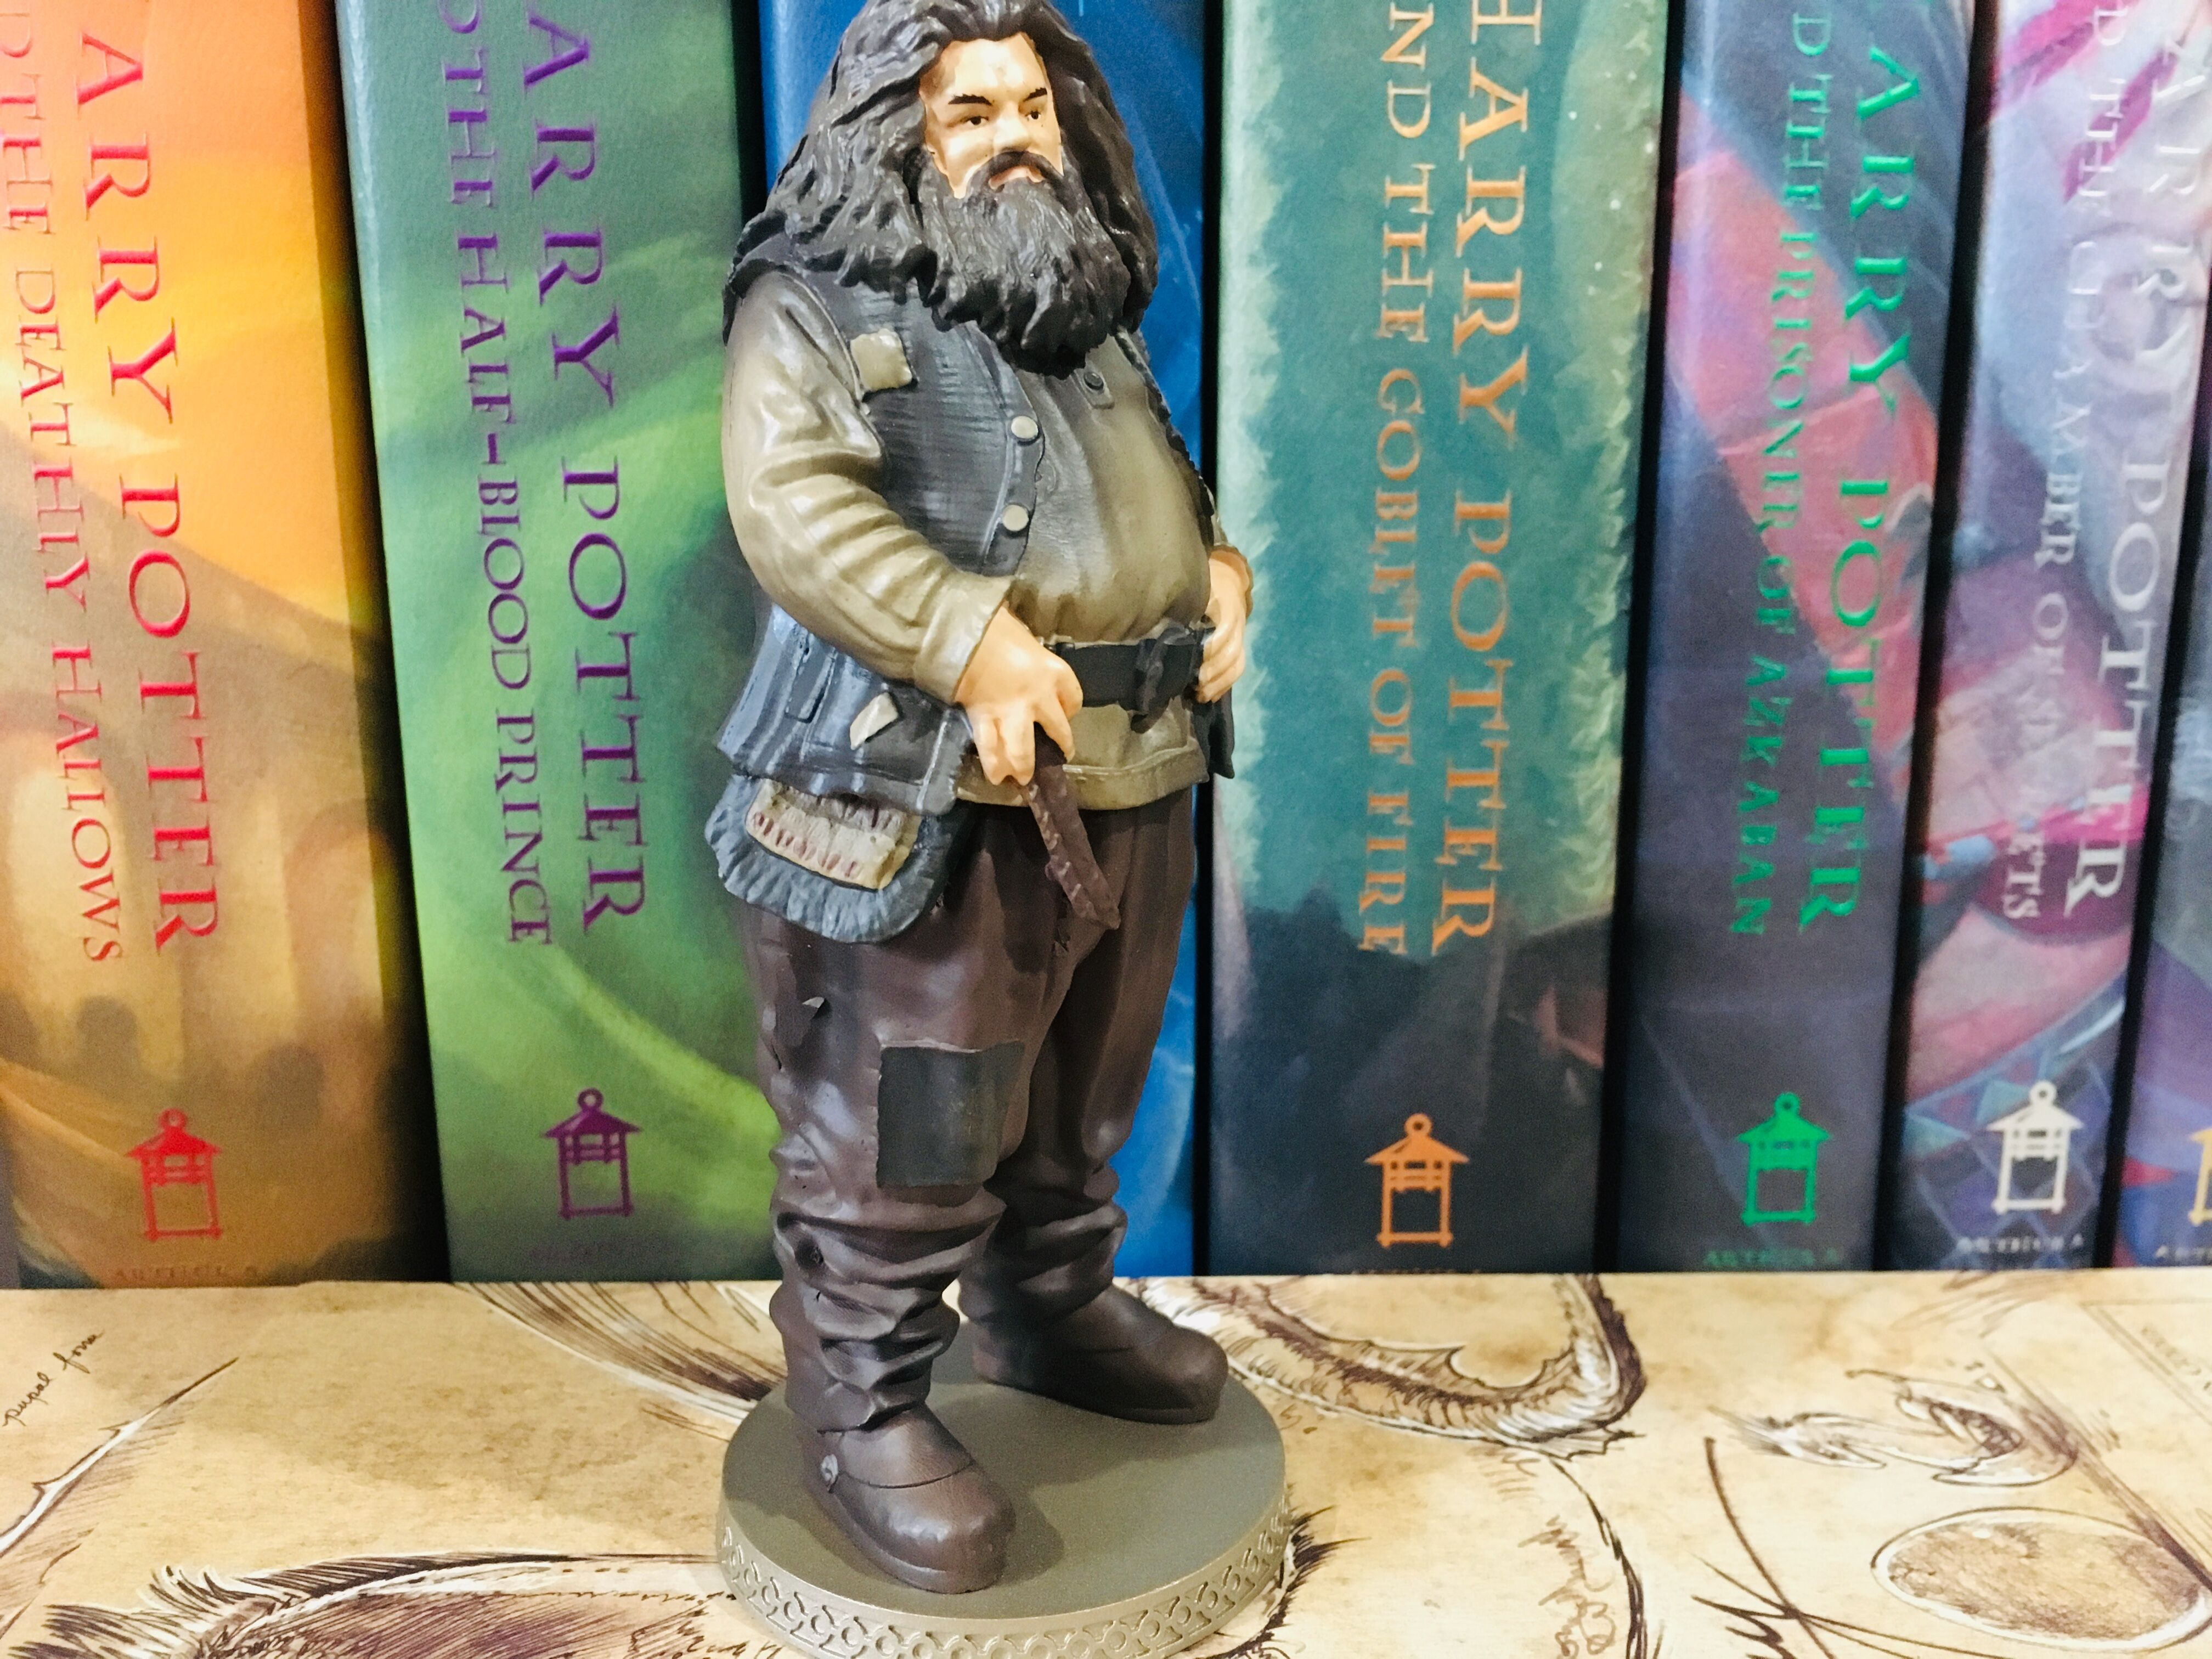 The level of detail on Hagrid is outstanding, even down to the frayed patches on his knee.